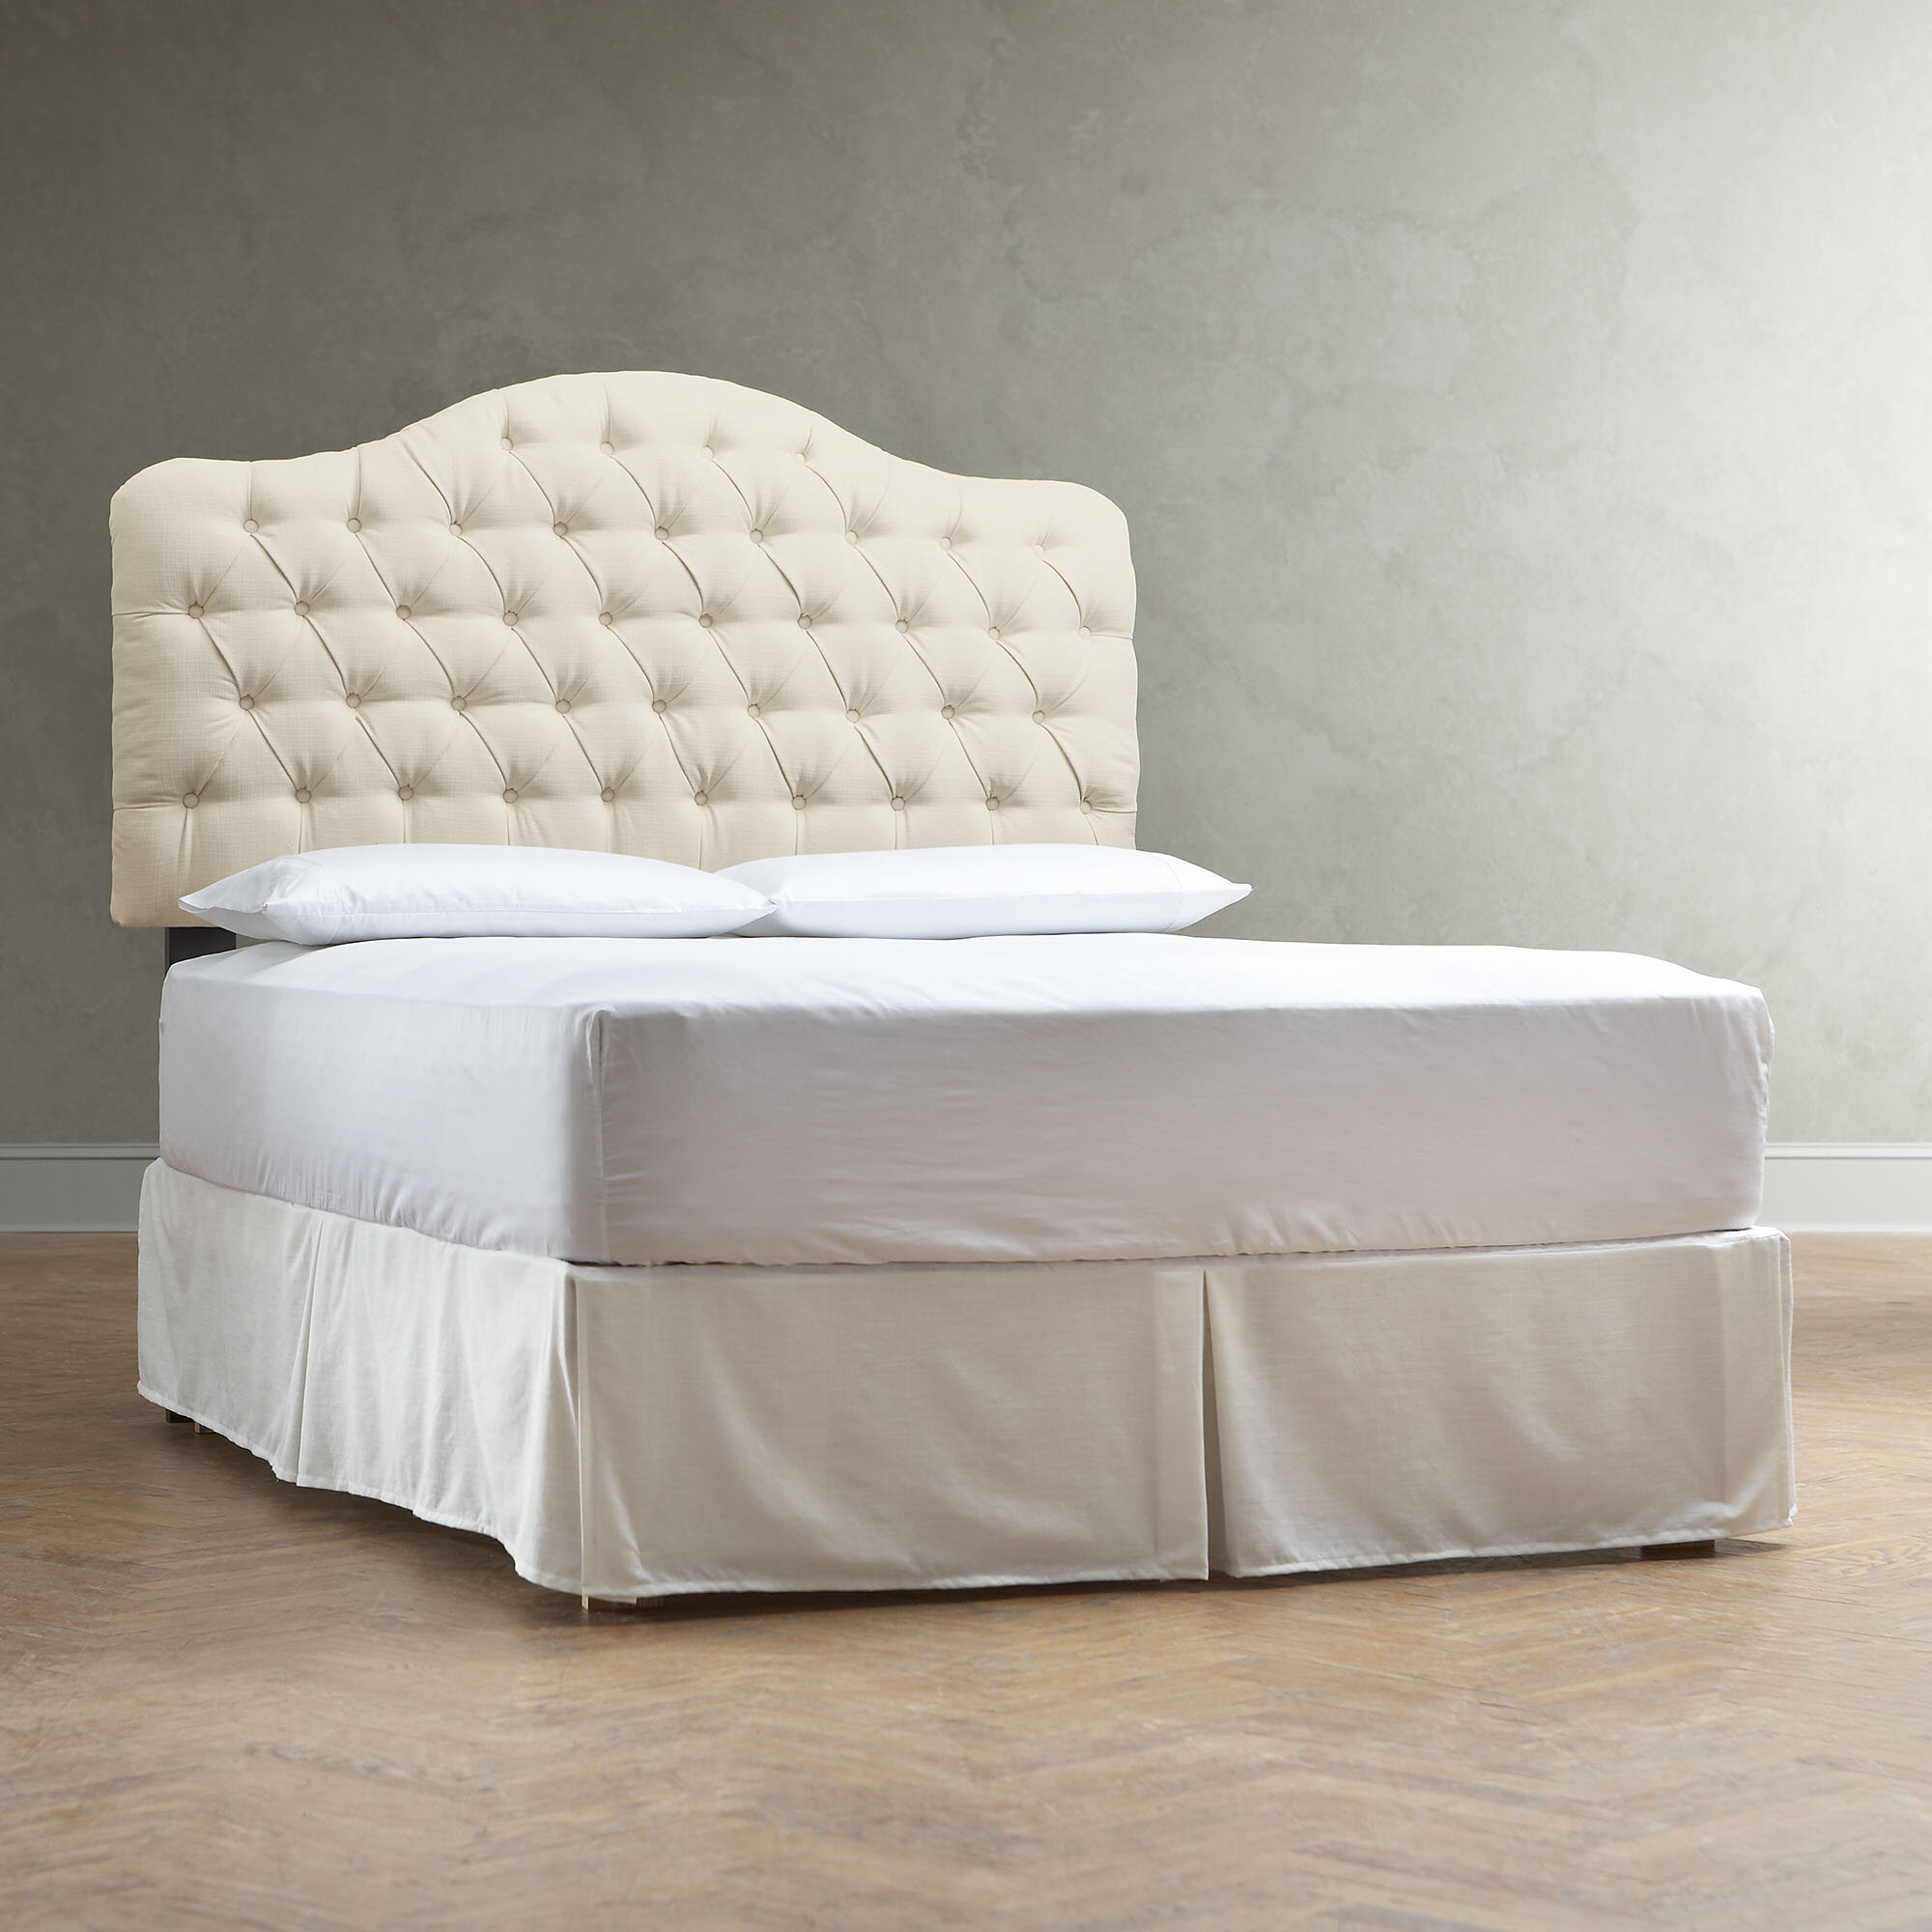 garden headboard baldwin park shipping free madison today upholstered slipcovered product home overstock